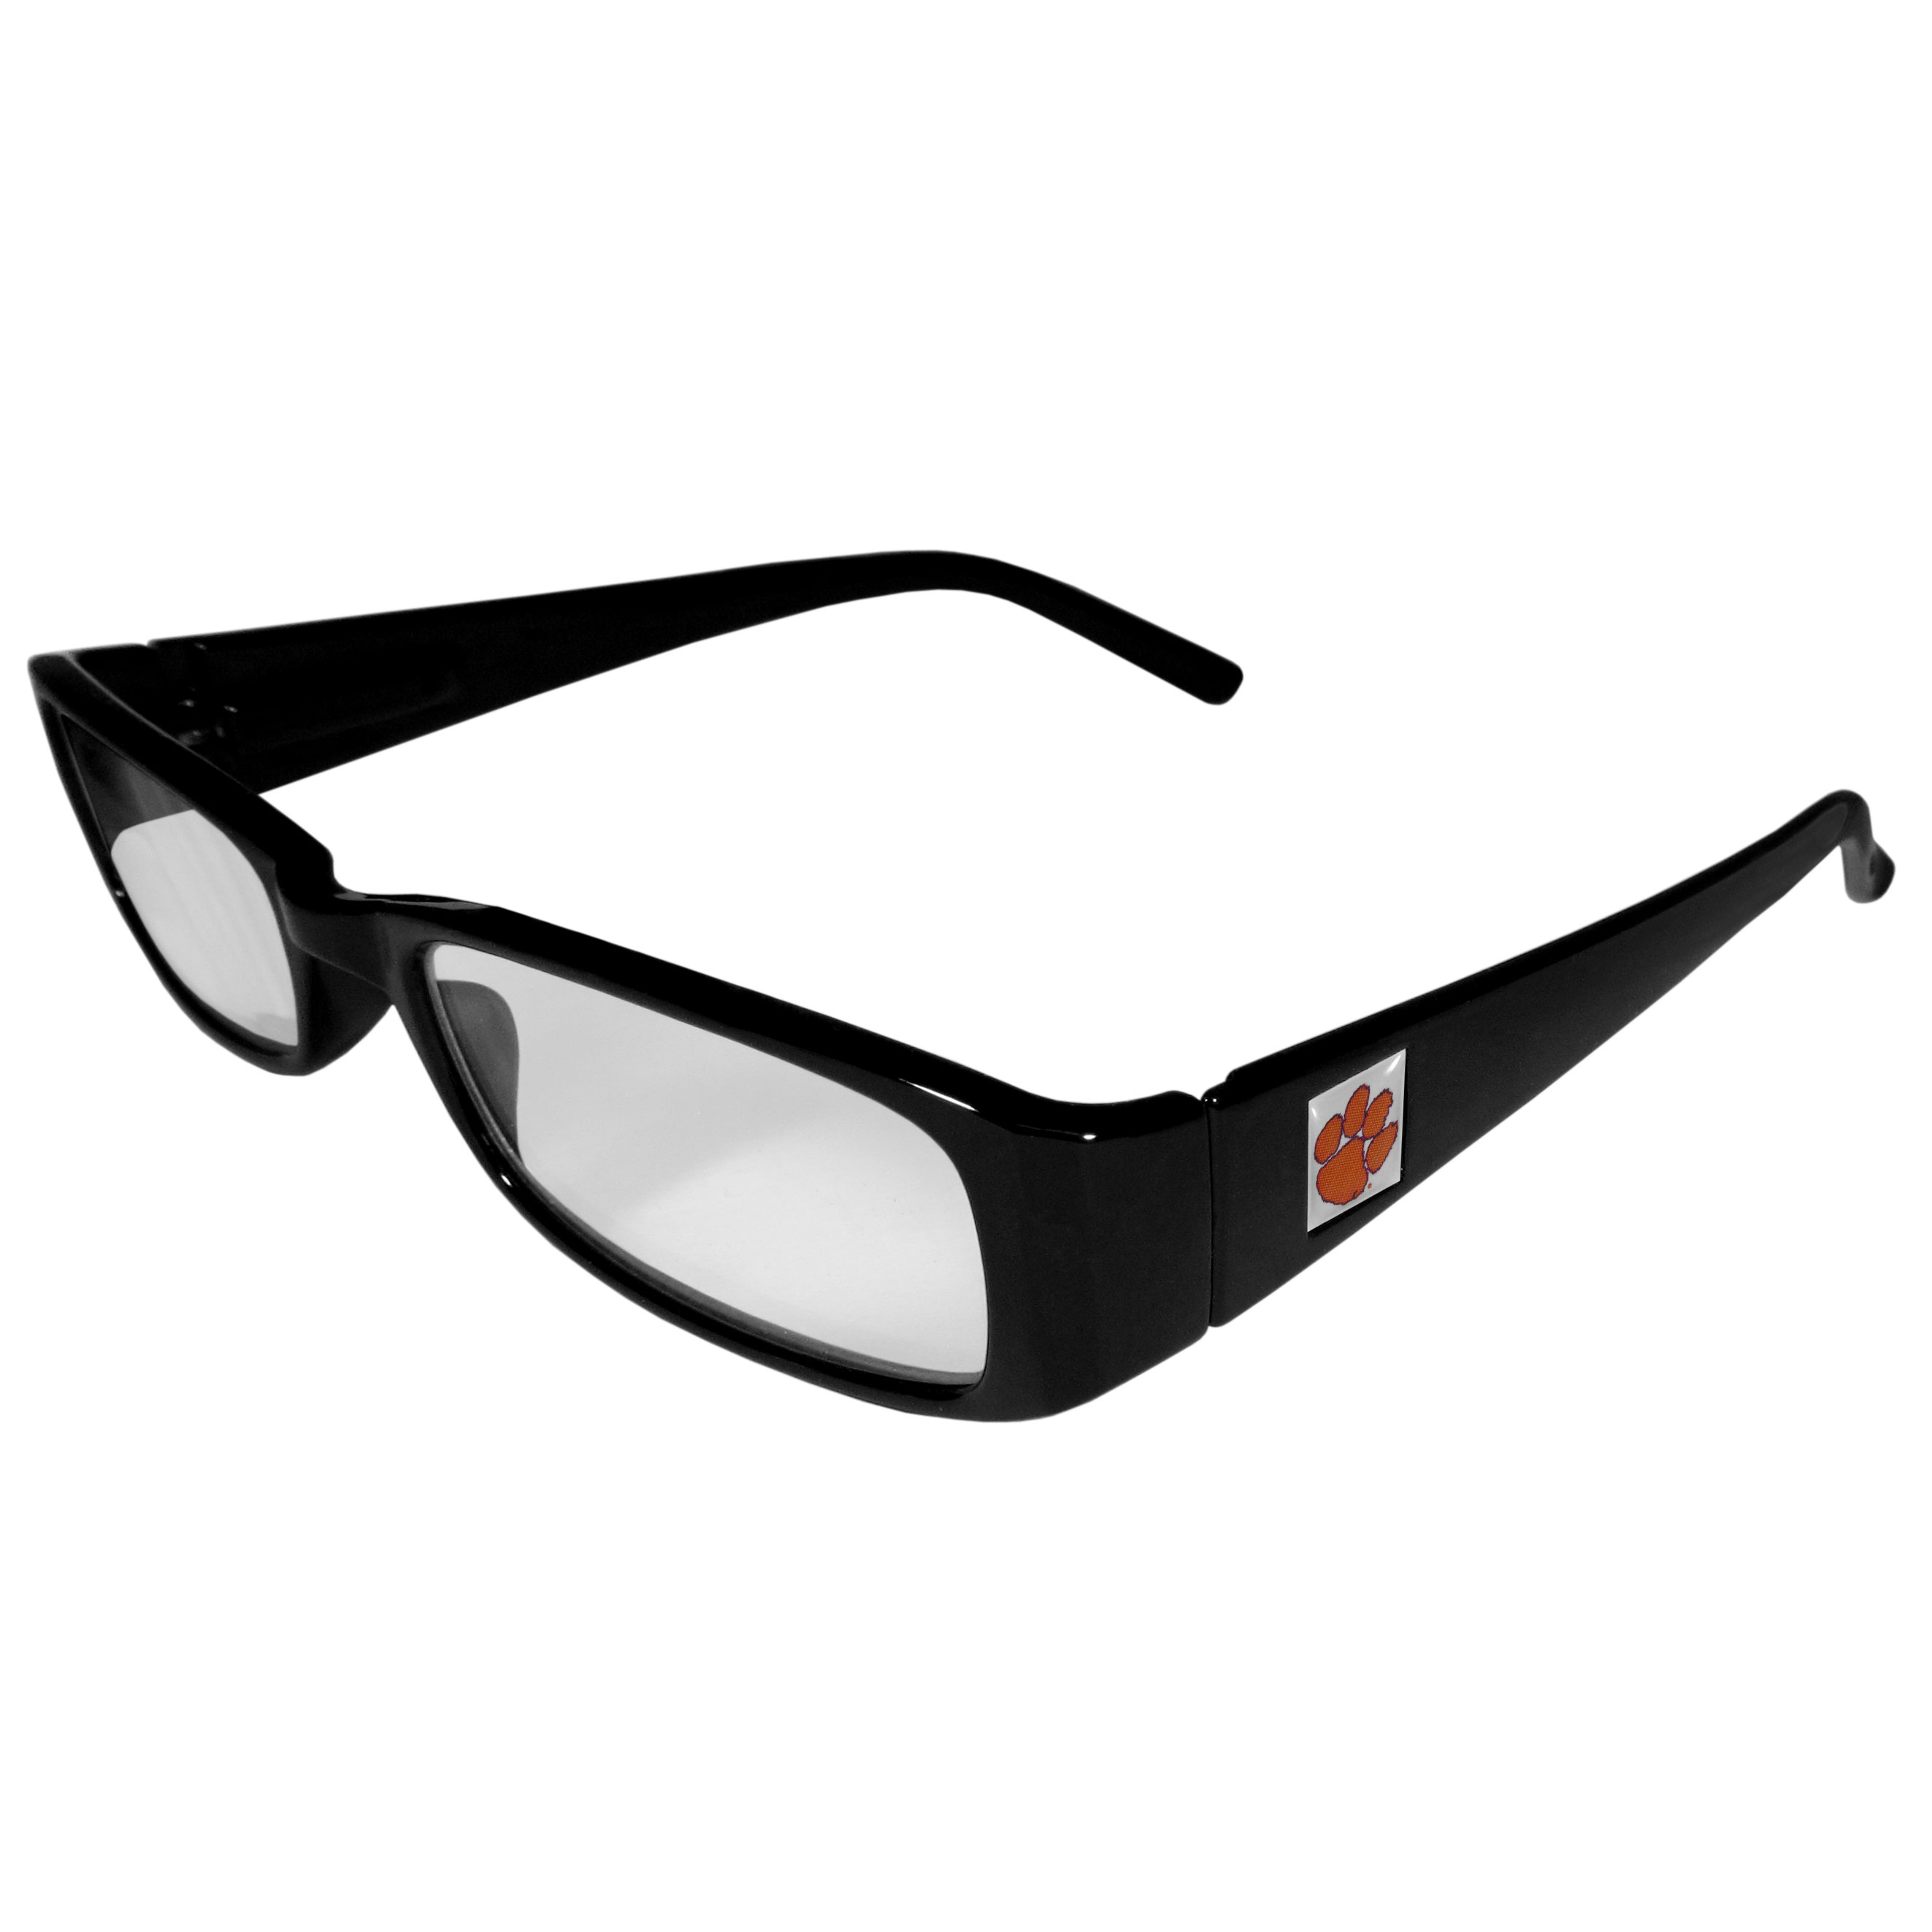 Clemson Tigers Black Reading Glasses +1.25 - Our Clemson Tigers reading glasses are 5.25 inches wide and feature the team logo on each arm. Magnification Power 1.25